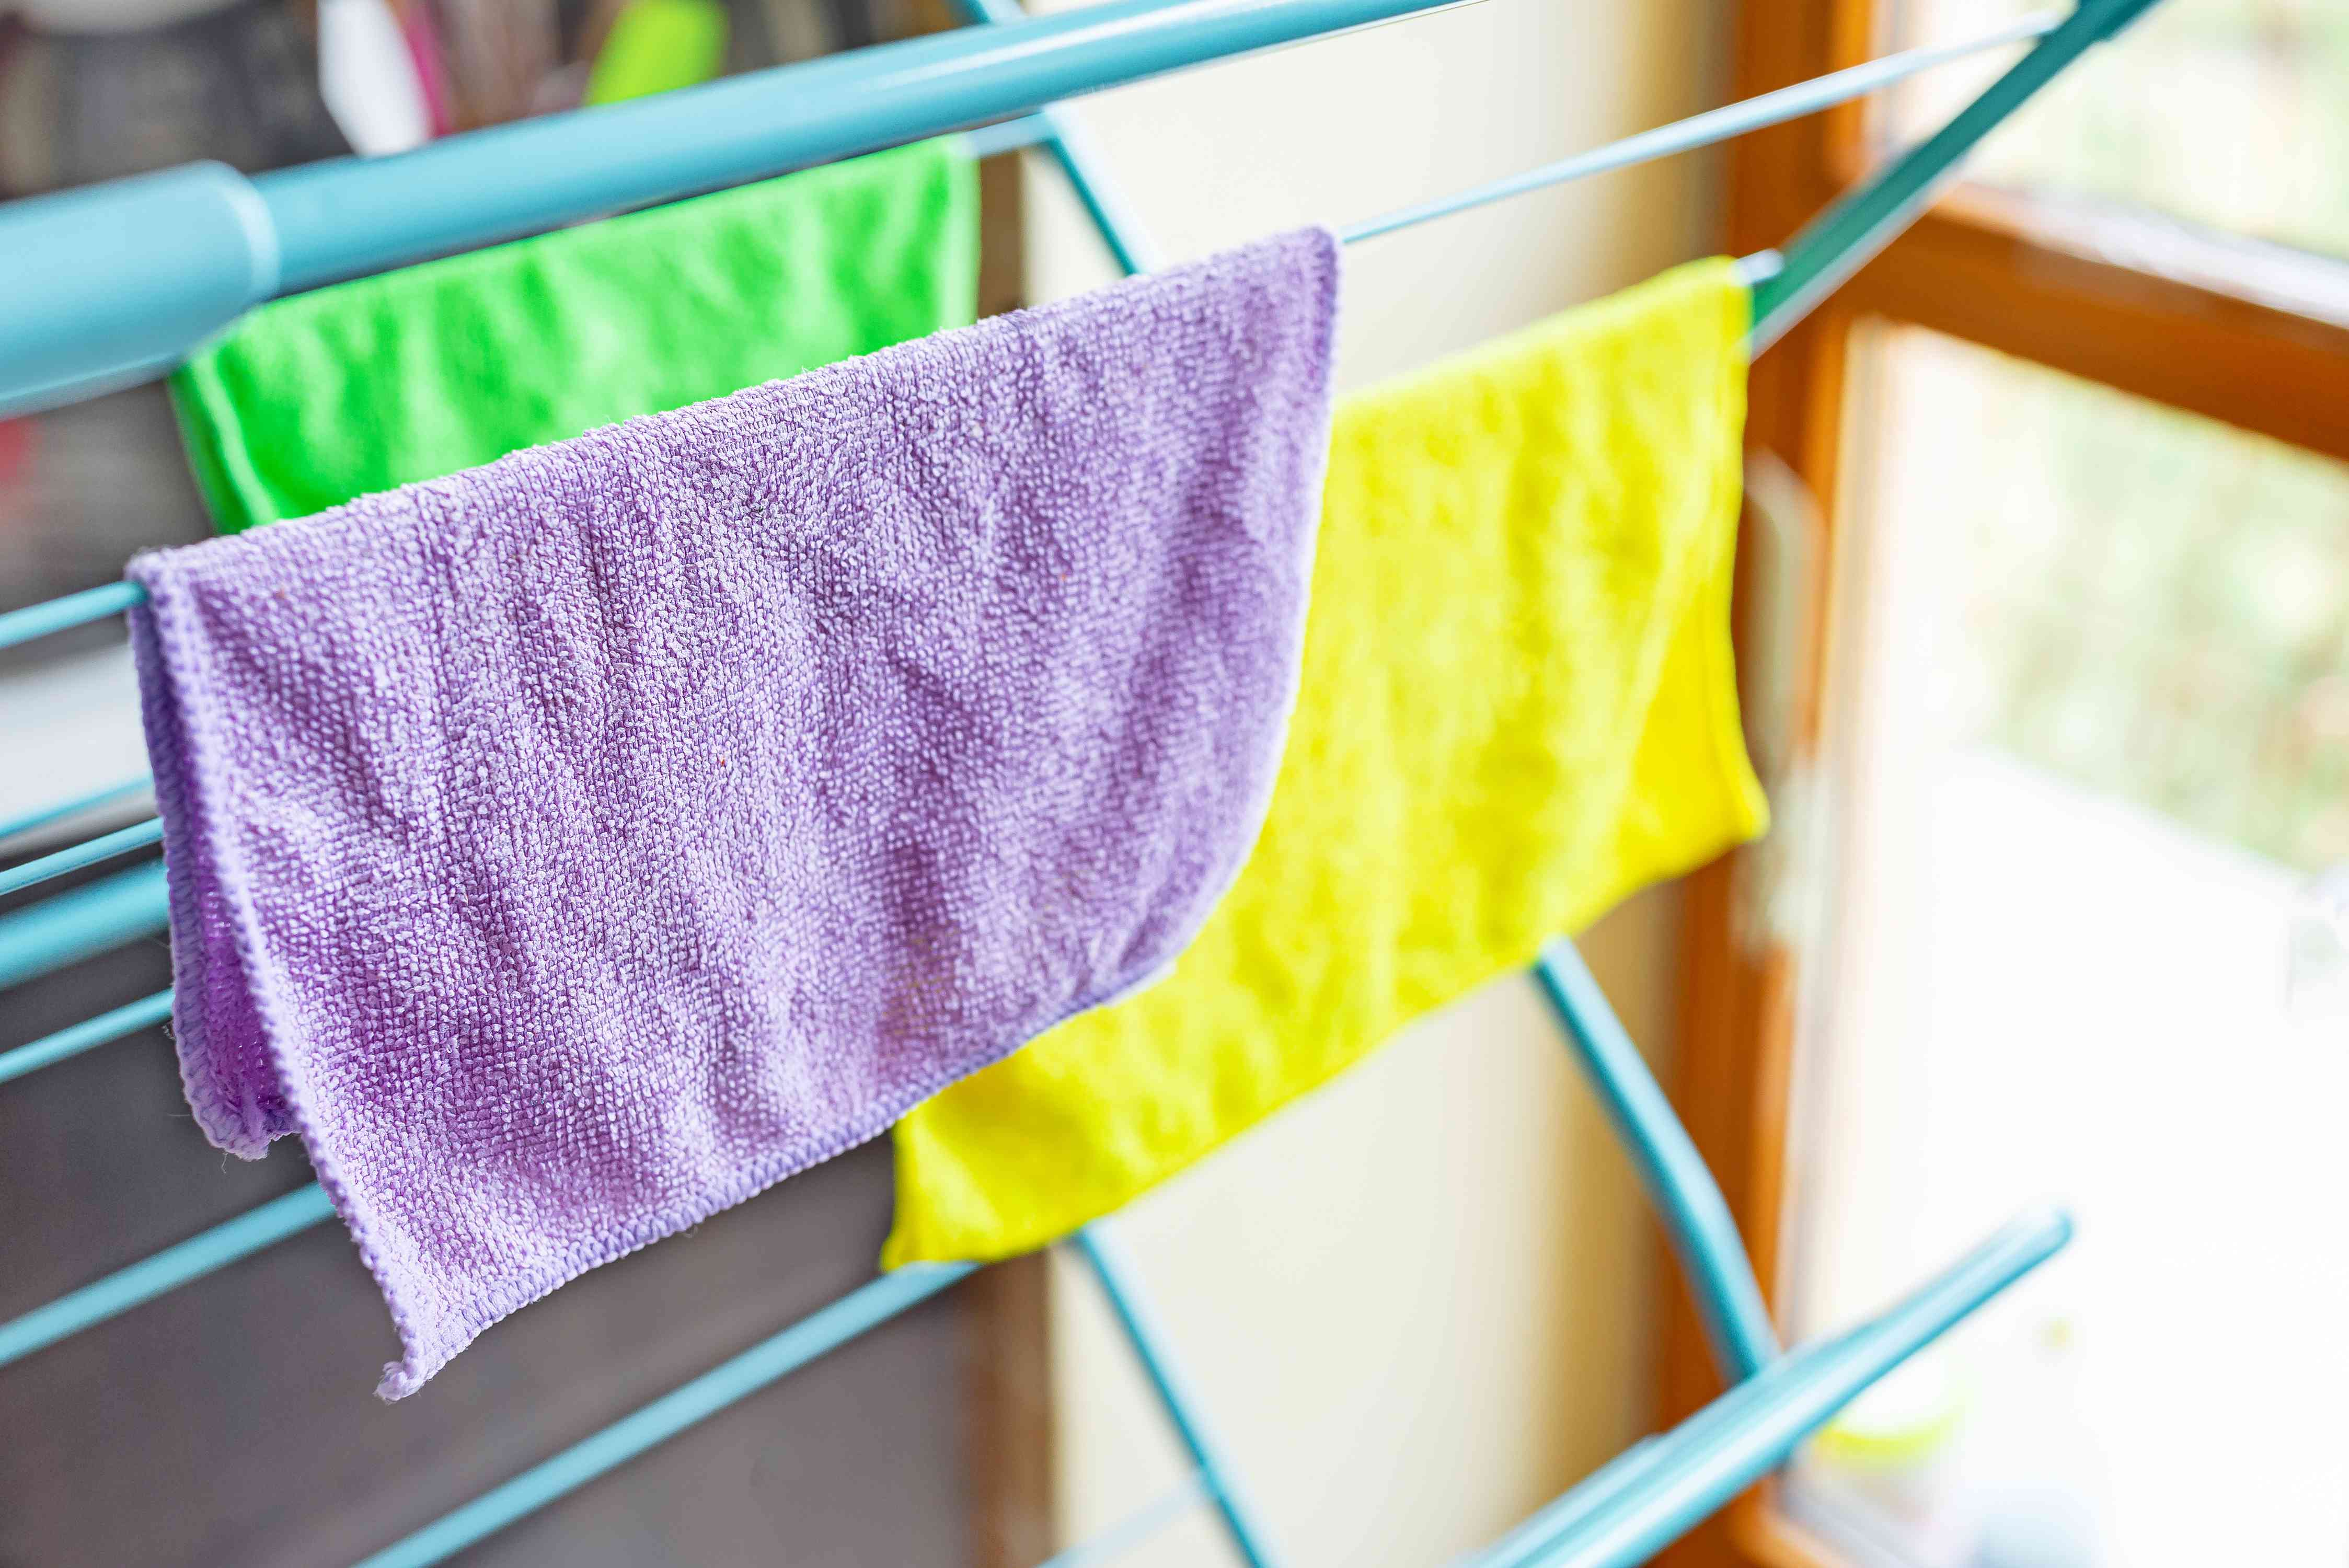 Multi-colored microfiber cloths hanging on drying rack to air dry